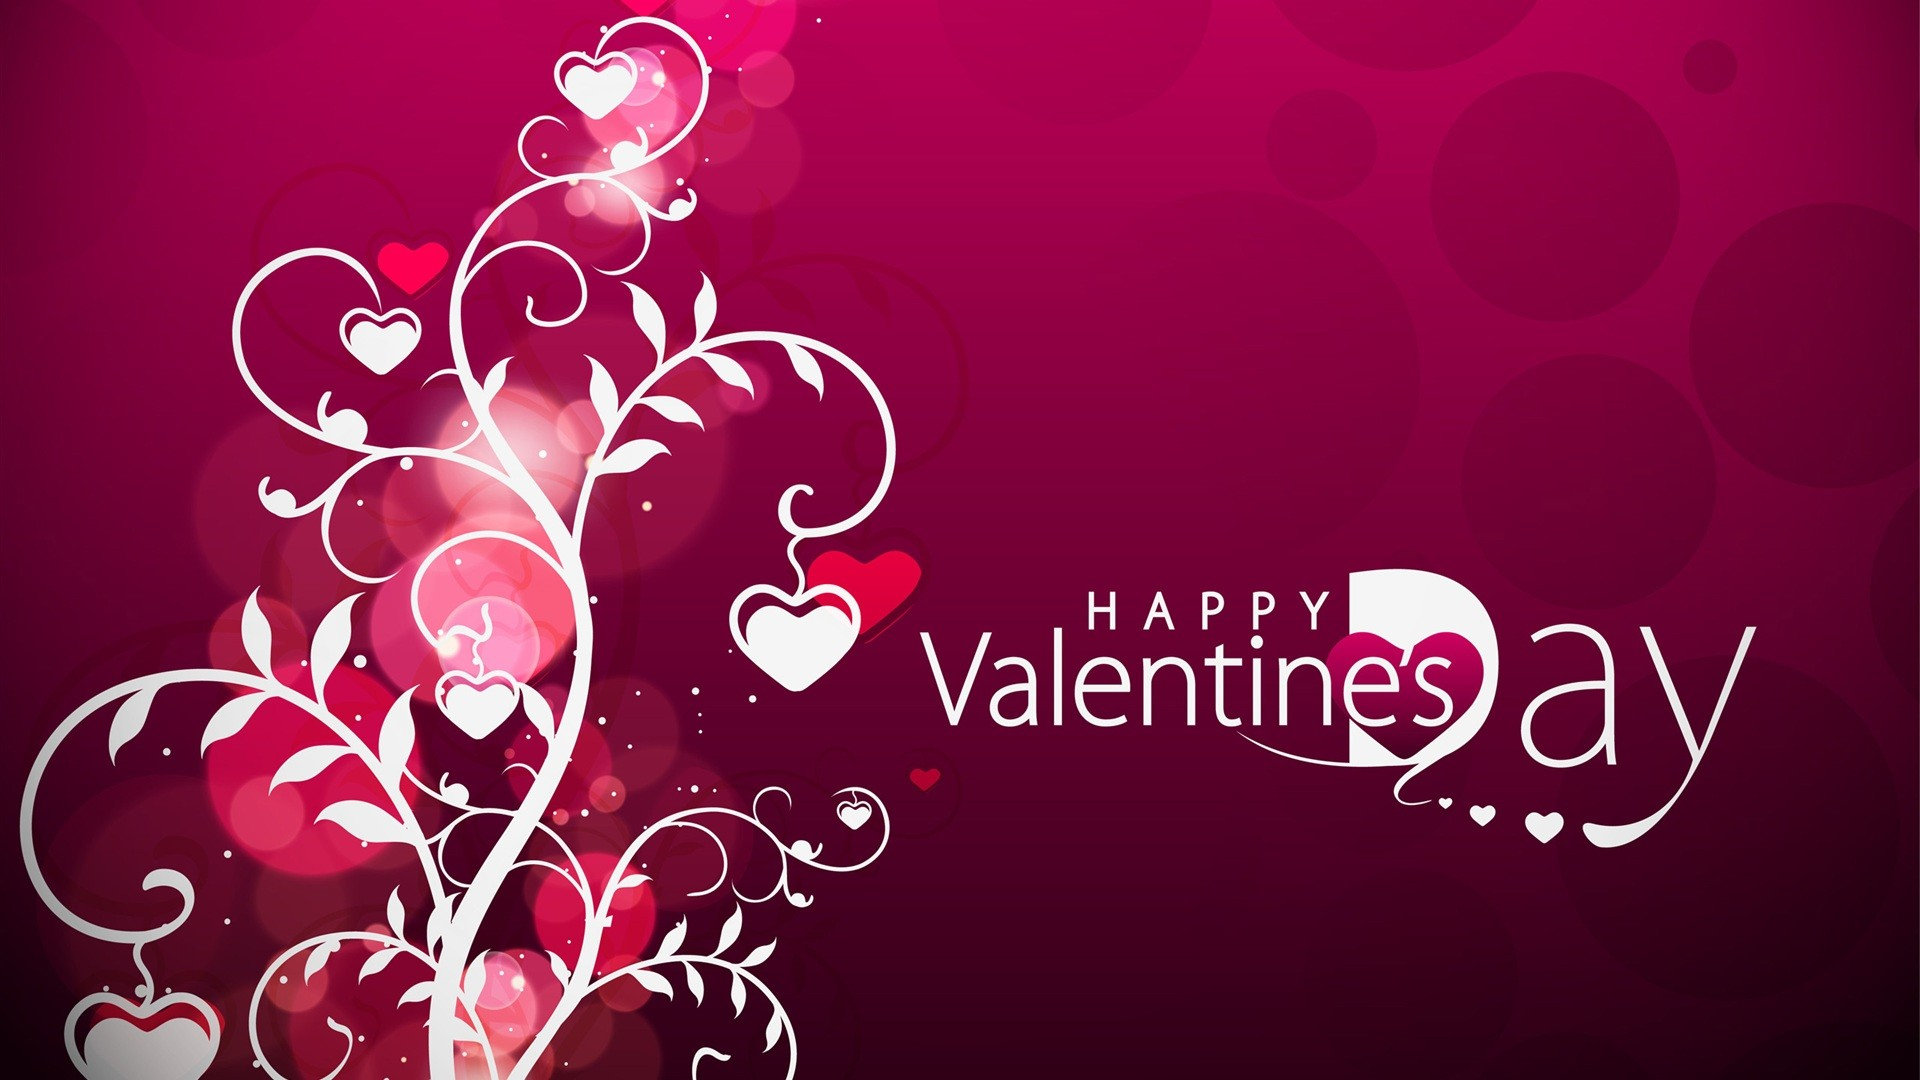 Happy Valentines Day Quotes for Him Her Husband Wife Boyfriend Girlfriend